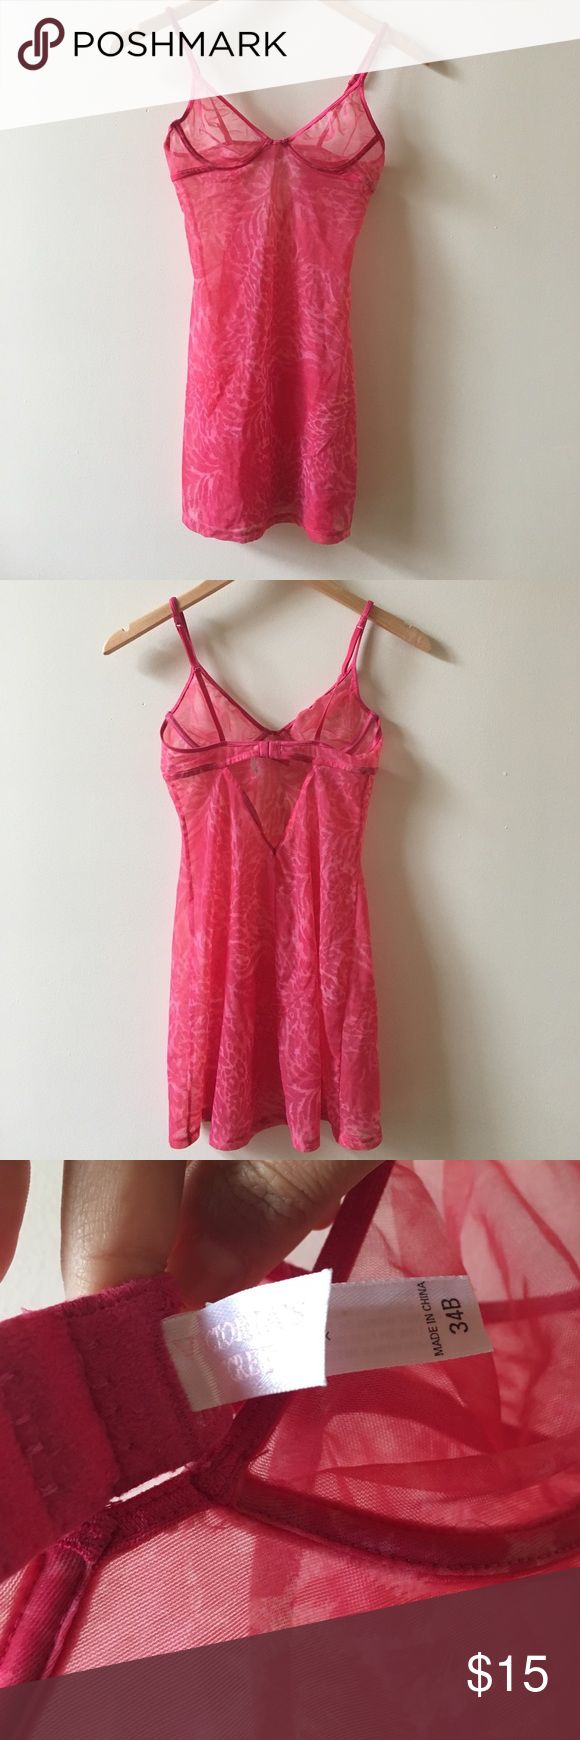 Pink lingerie Valentine's Day Perfect lingerie for Valentine's Day. Size 34B PINK Victoria's Secret Intimates & Sleepwear